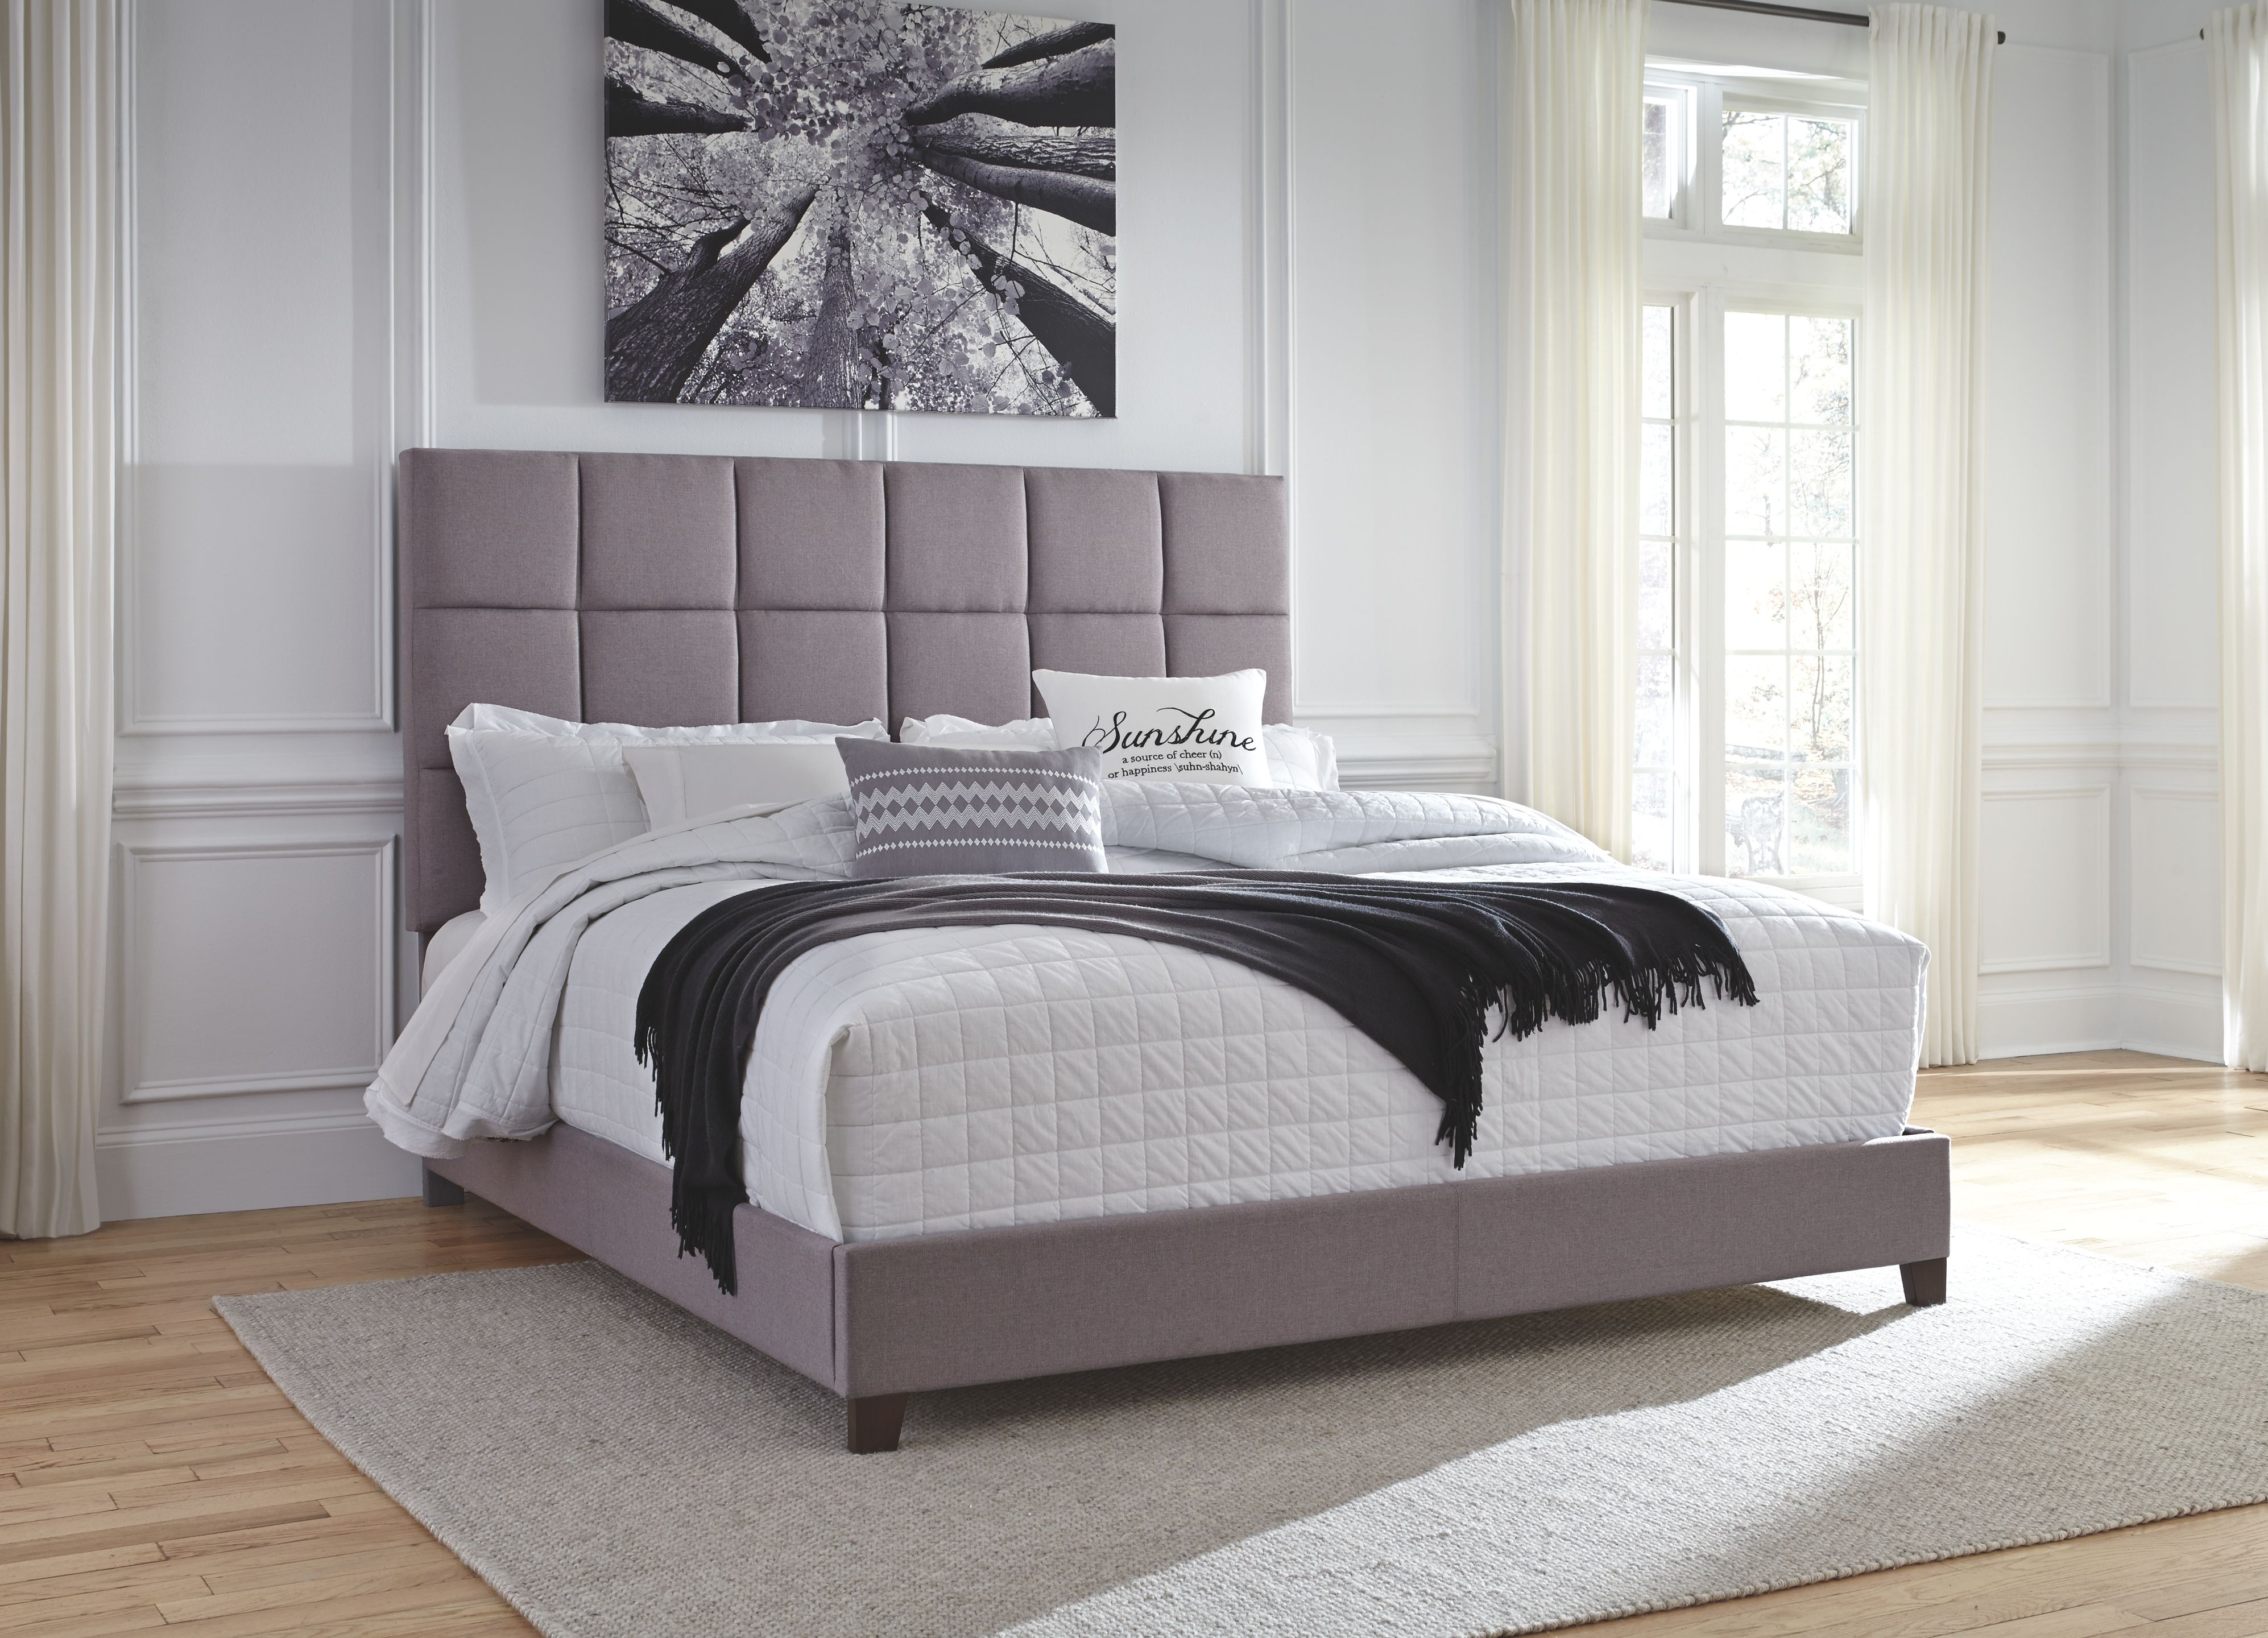 """Dolante King Upholstered Bed with 10"""" Hybrid Mattress in a"""